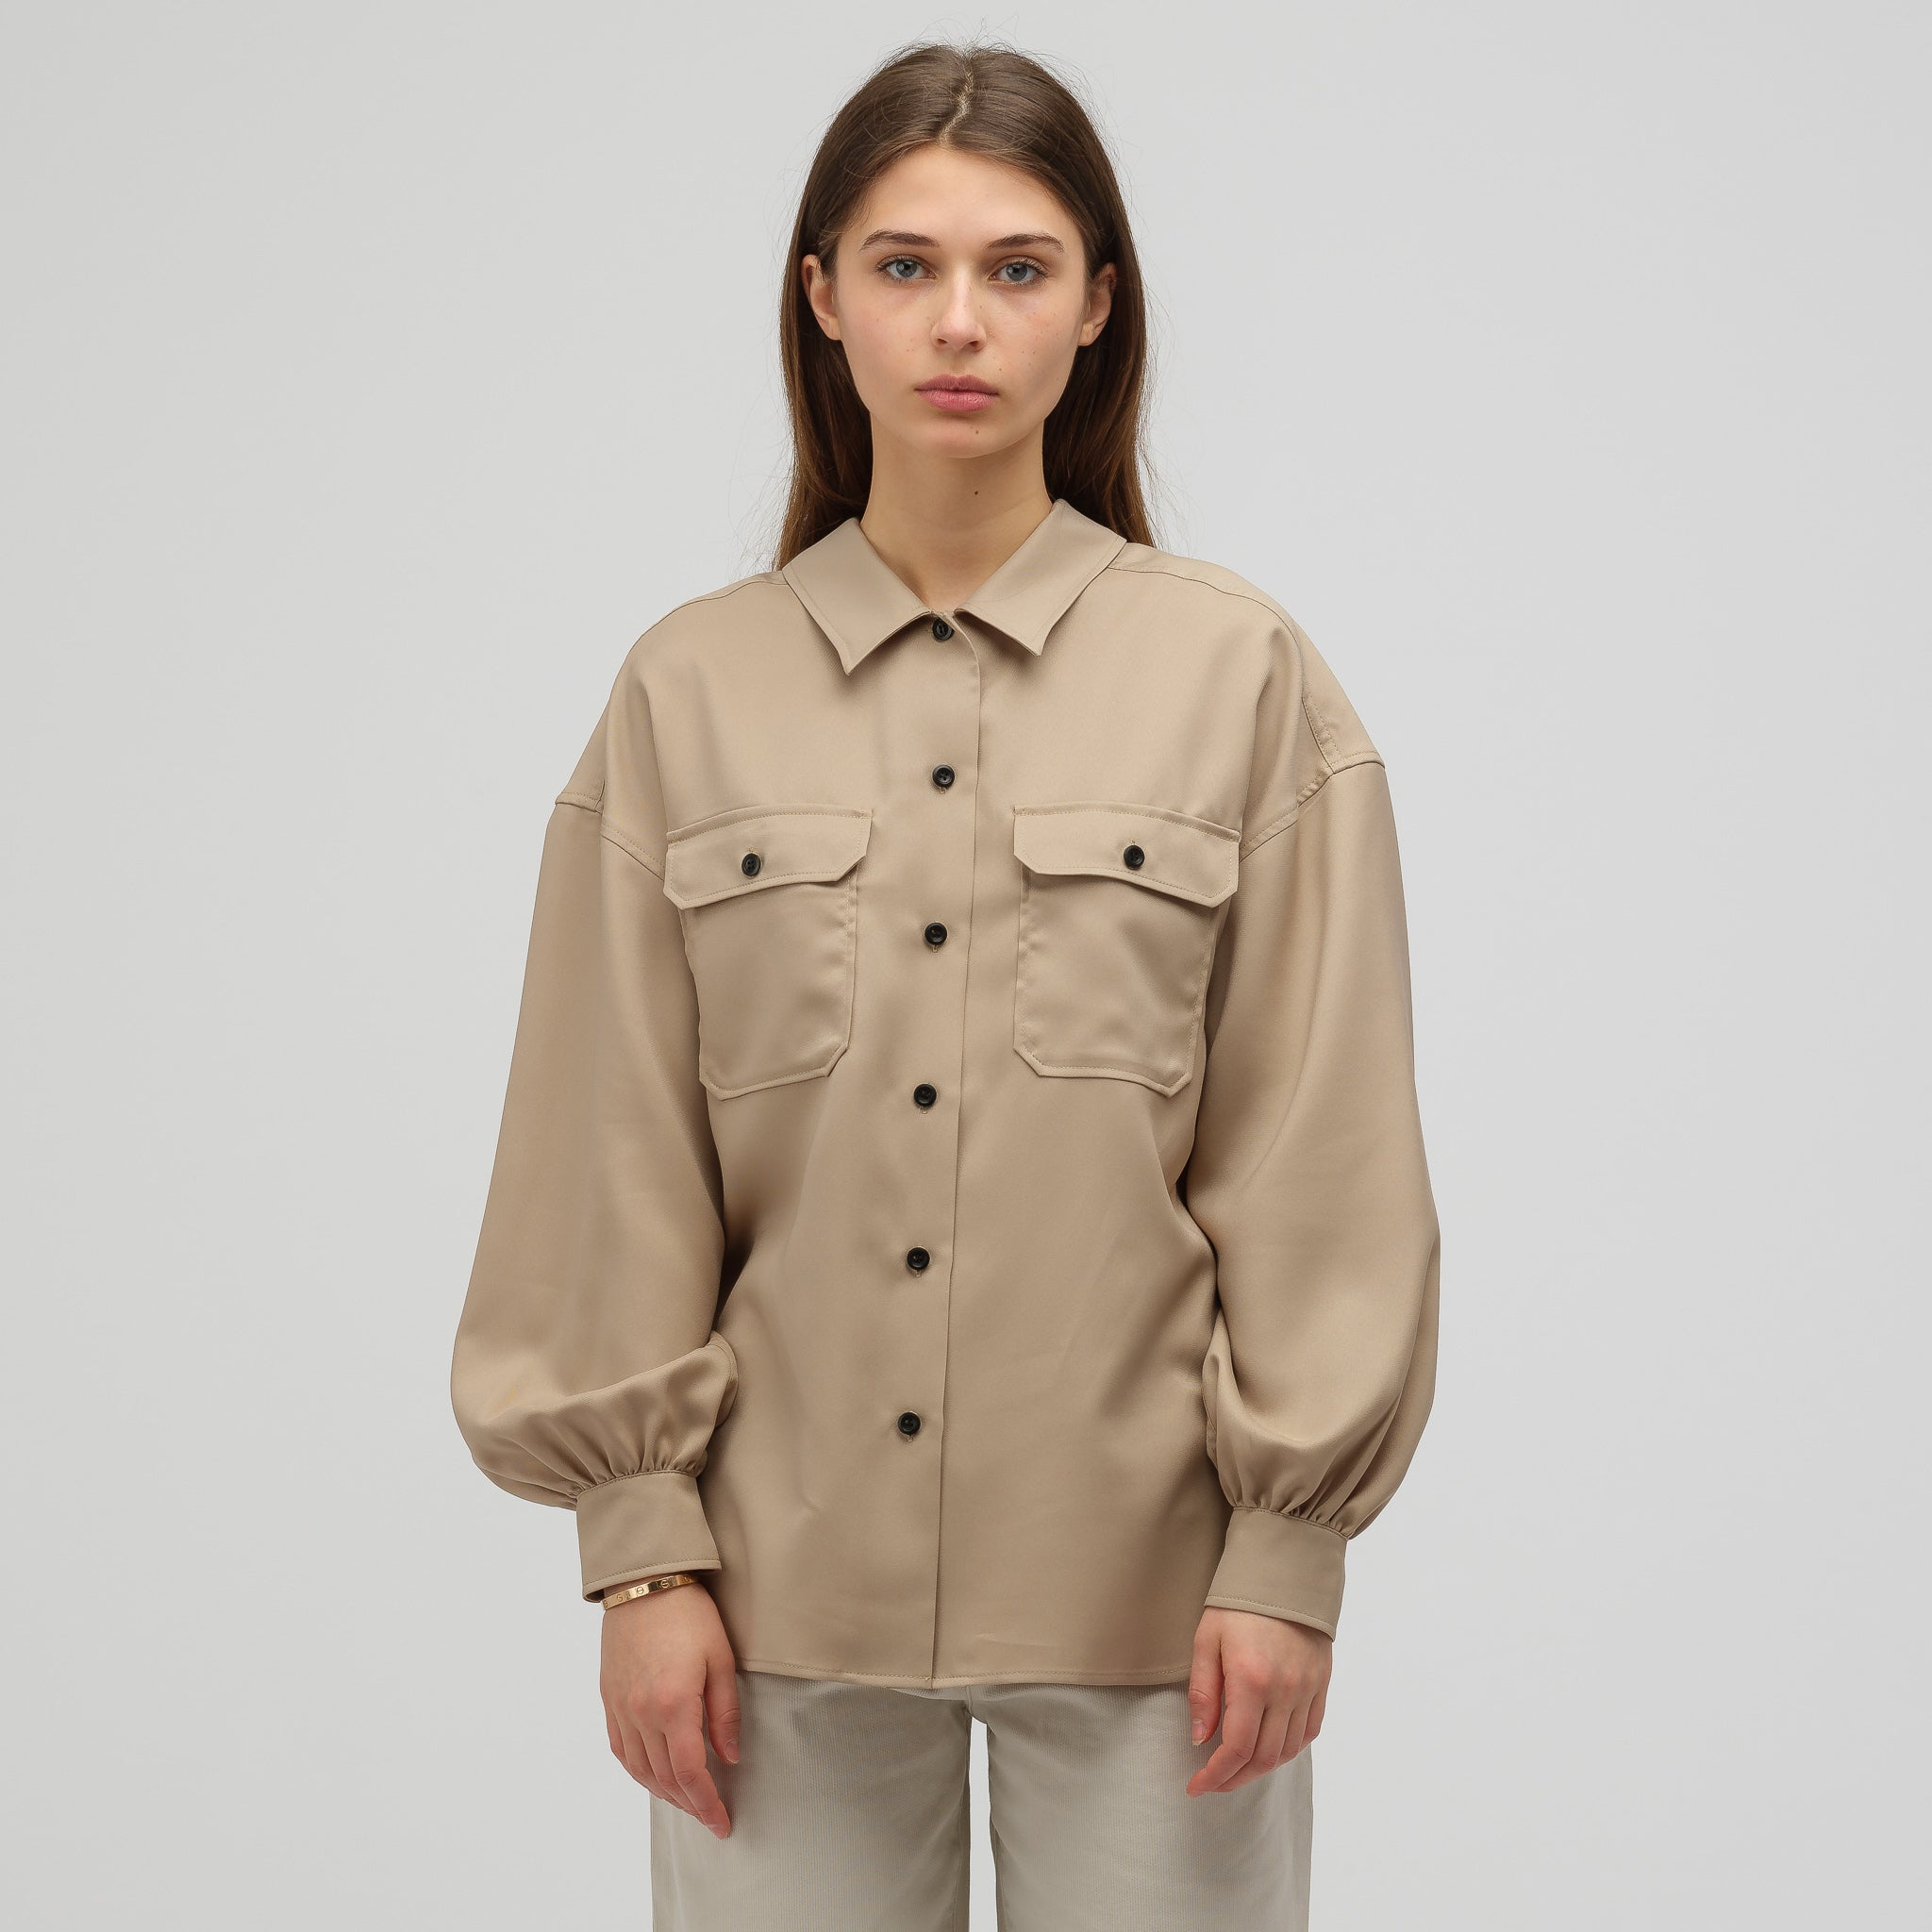 7b63413e HYKE Woven Button-Up Military Shirt in Tan | Notre